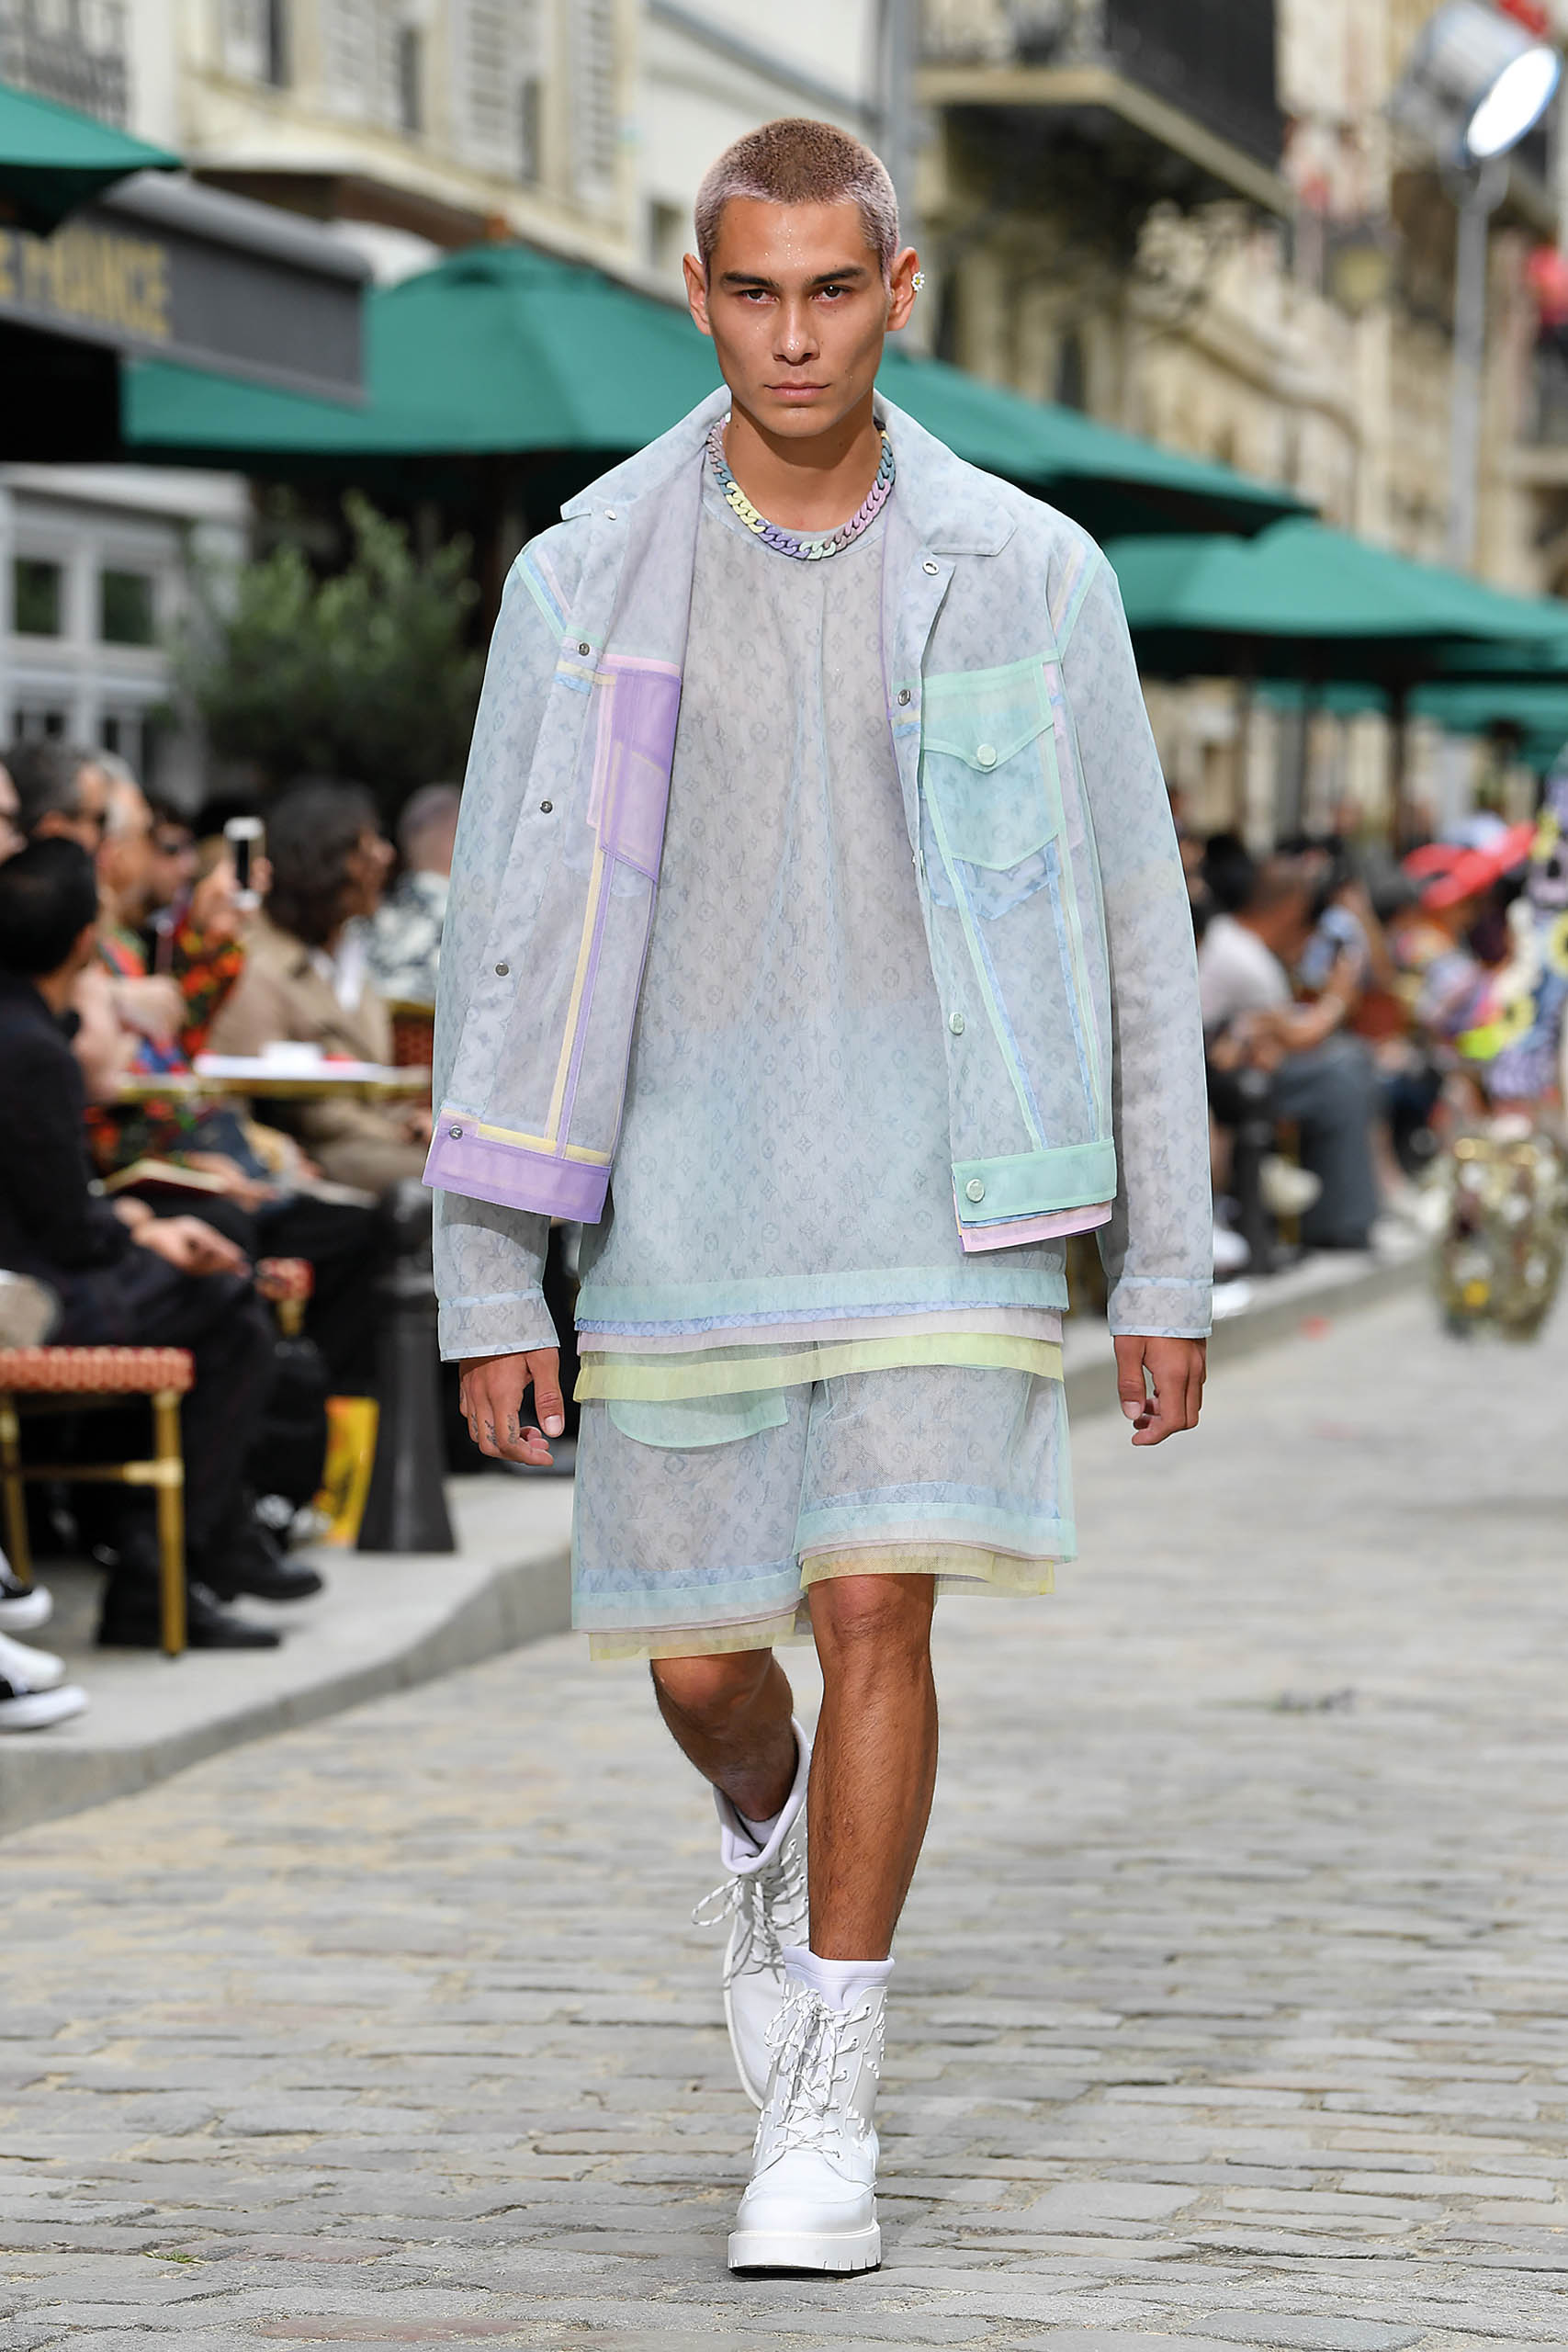 Whether he's locked in trim, hanging above coping, or strutting down a Parisian street for Louis Vuitton's spring/summer collection, Mock makes all his moves at the top of the field—and hits the right marks in style. (Photo by Pascal Le Segretain/Getty Images)